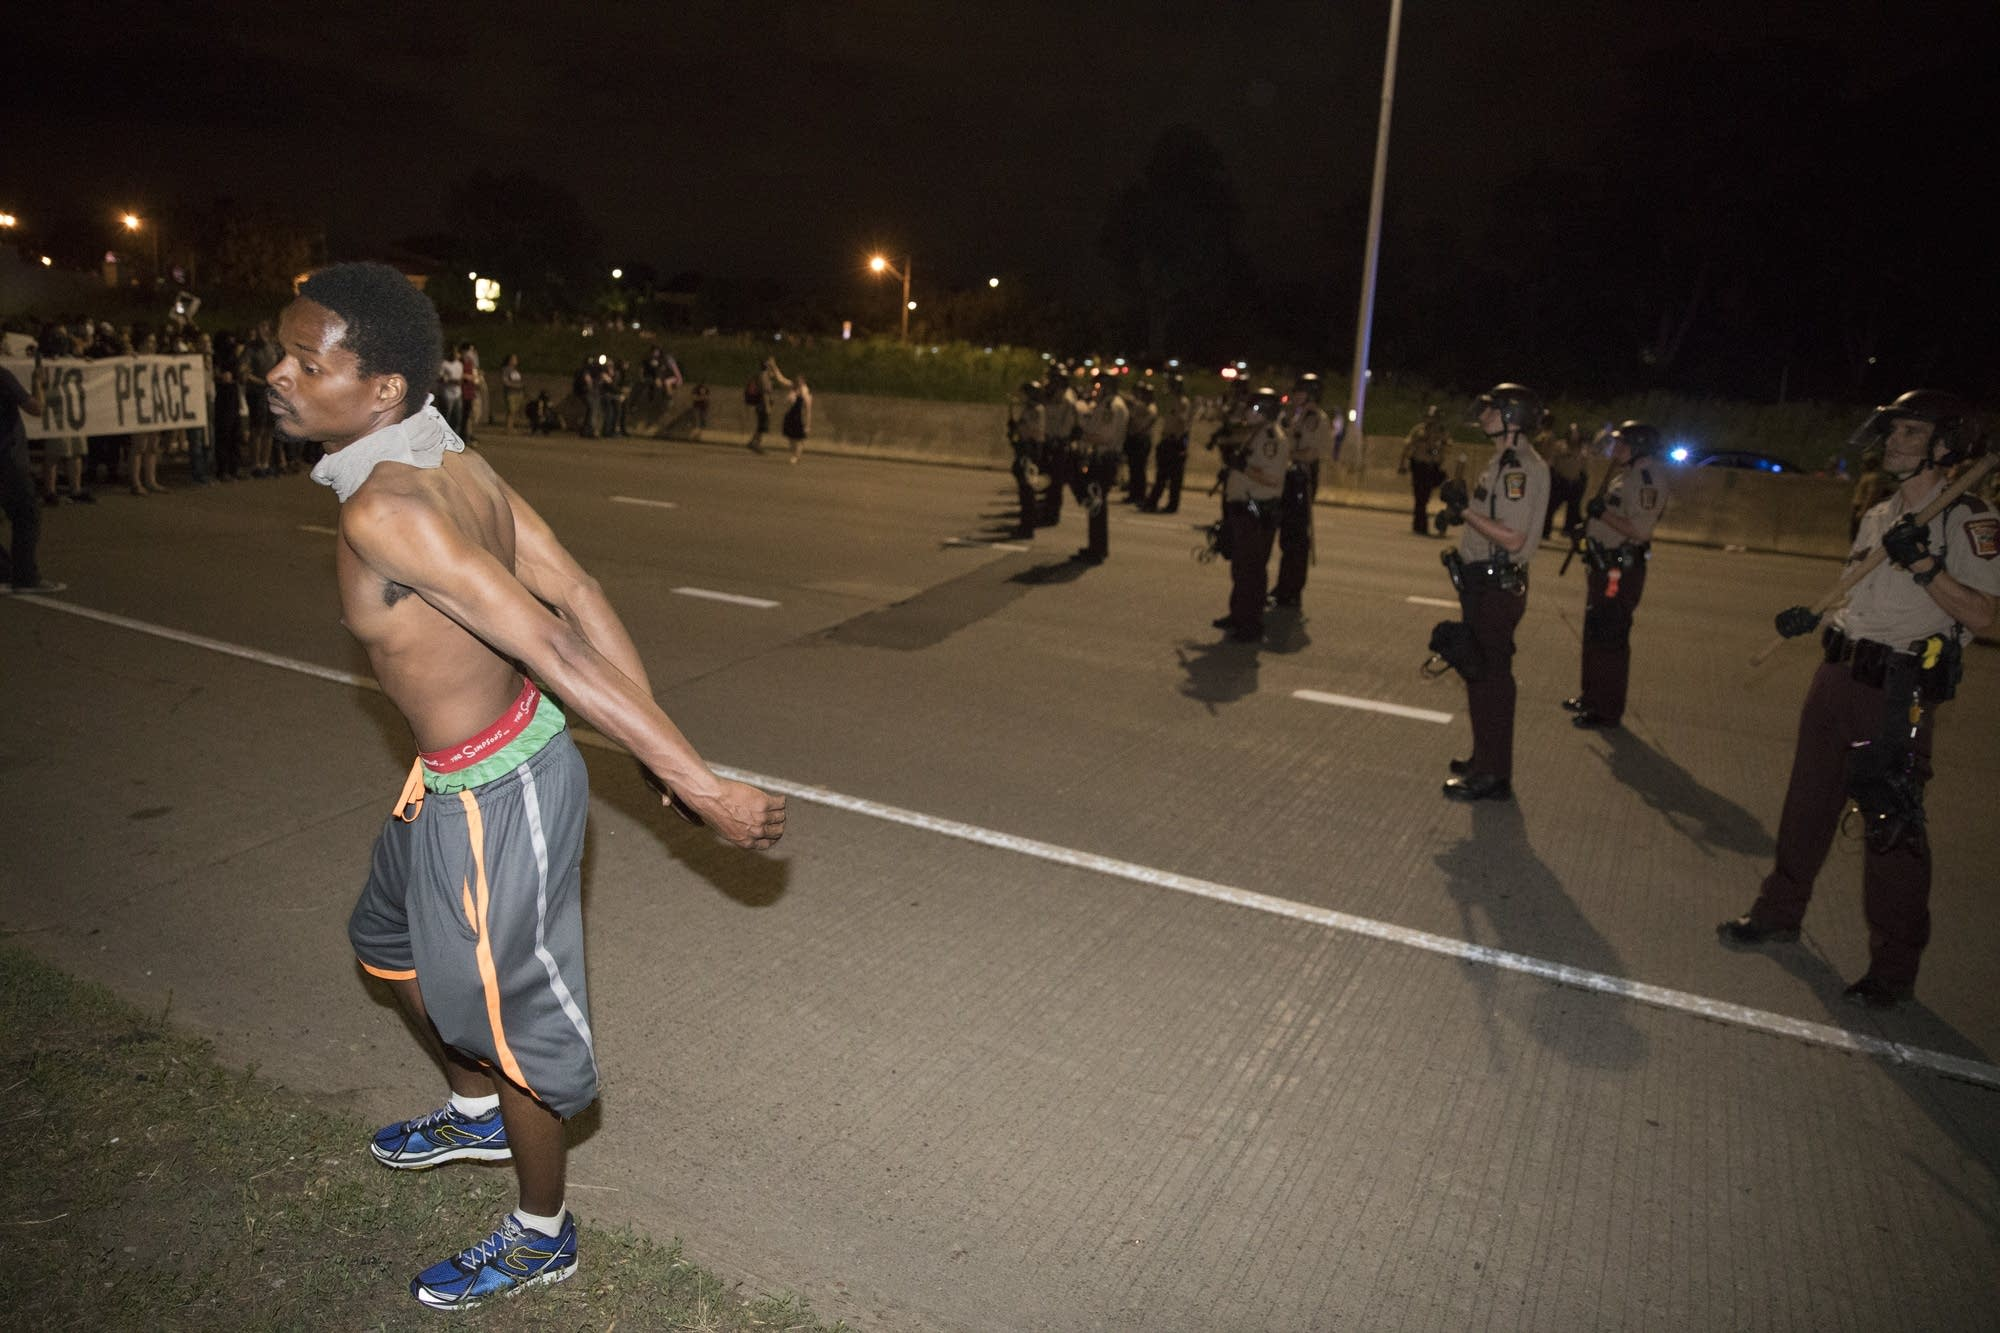 A protester stands with his hands behind his back, asking to be arrested.